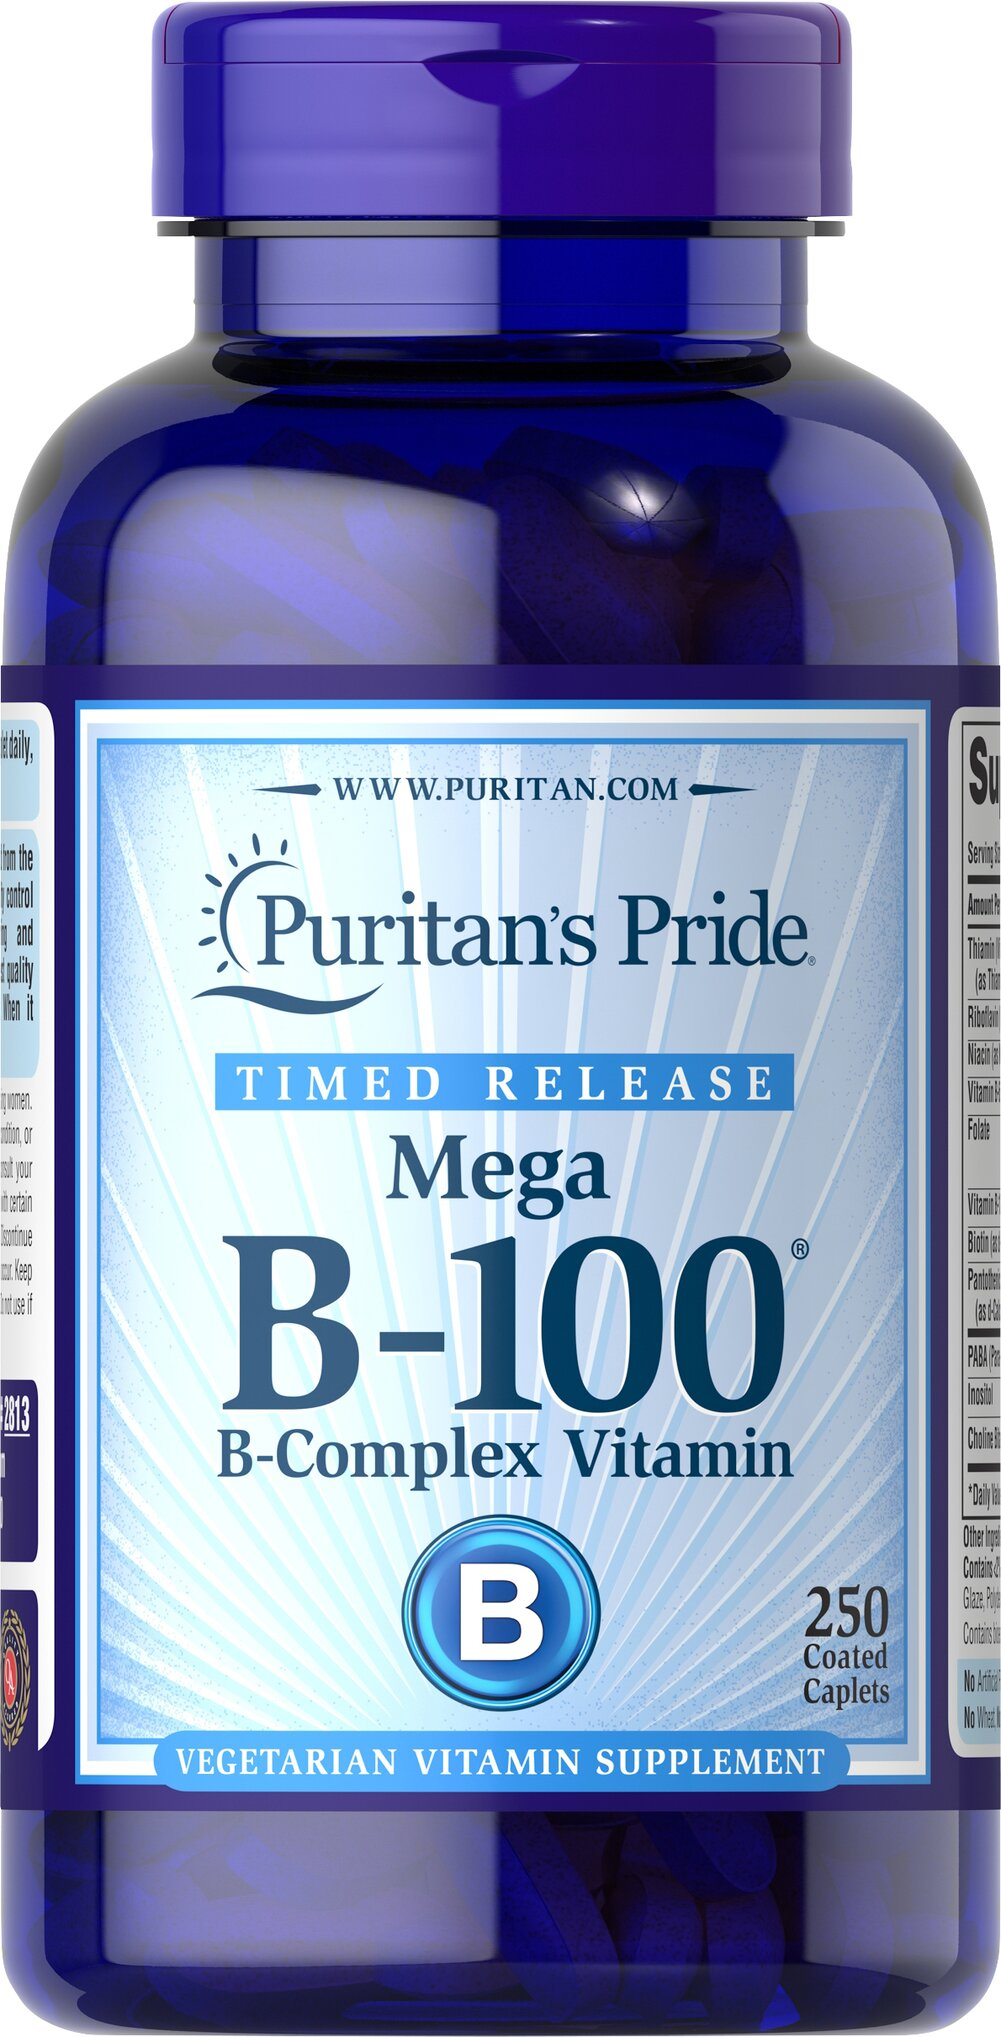 Vitamin B-100® Complex Timed Release <p>Each nutrient in the Vitamin B-100® Complex performs a unique role in maintaining proper metabolic functioning and is essential for well being.** When taken together in a complex formula, the B Vitamins help to maintain the health of the nervous system, skin, eyes and hair.** This product is specially formulated to provide a gradual release of vitamins over a prolonged period of time.</p>  250 Tablets 100 mg $55.98